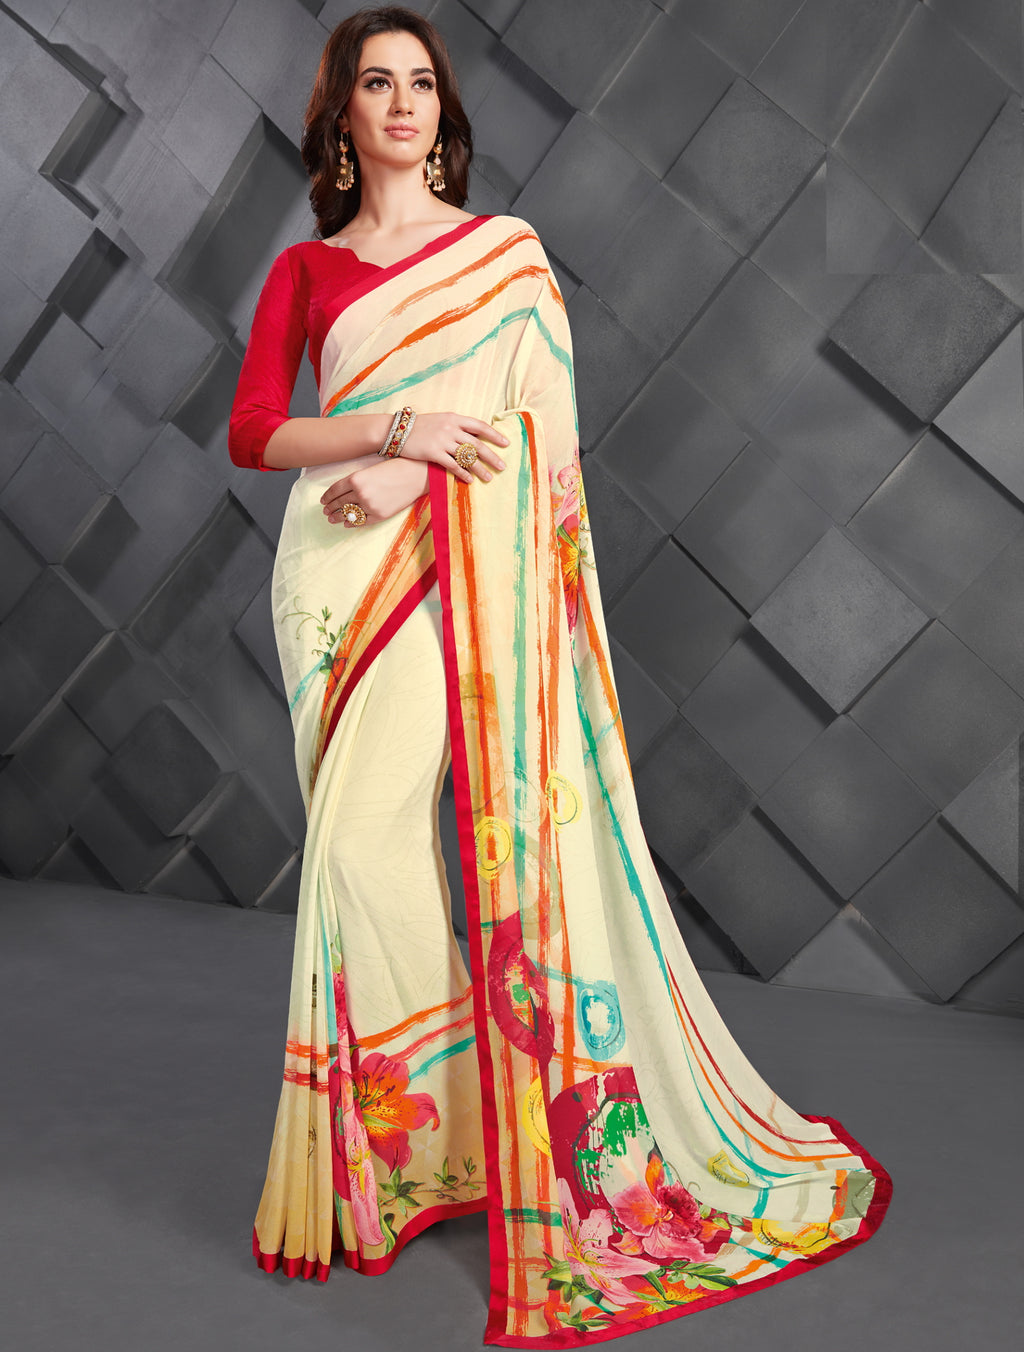 Off White Color Georgette Splendid Kitty Party Sarees NYF-6389